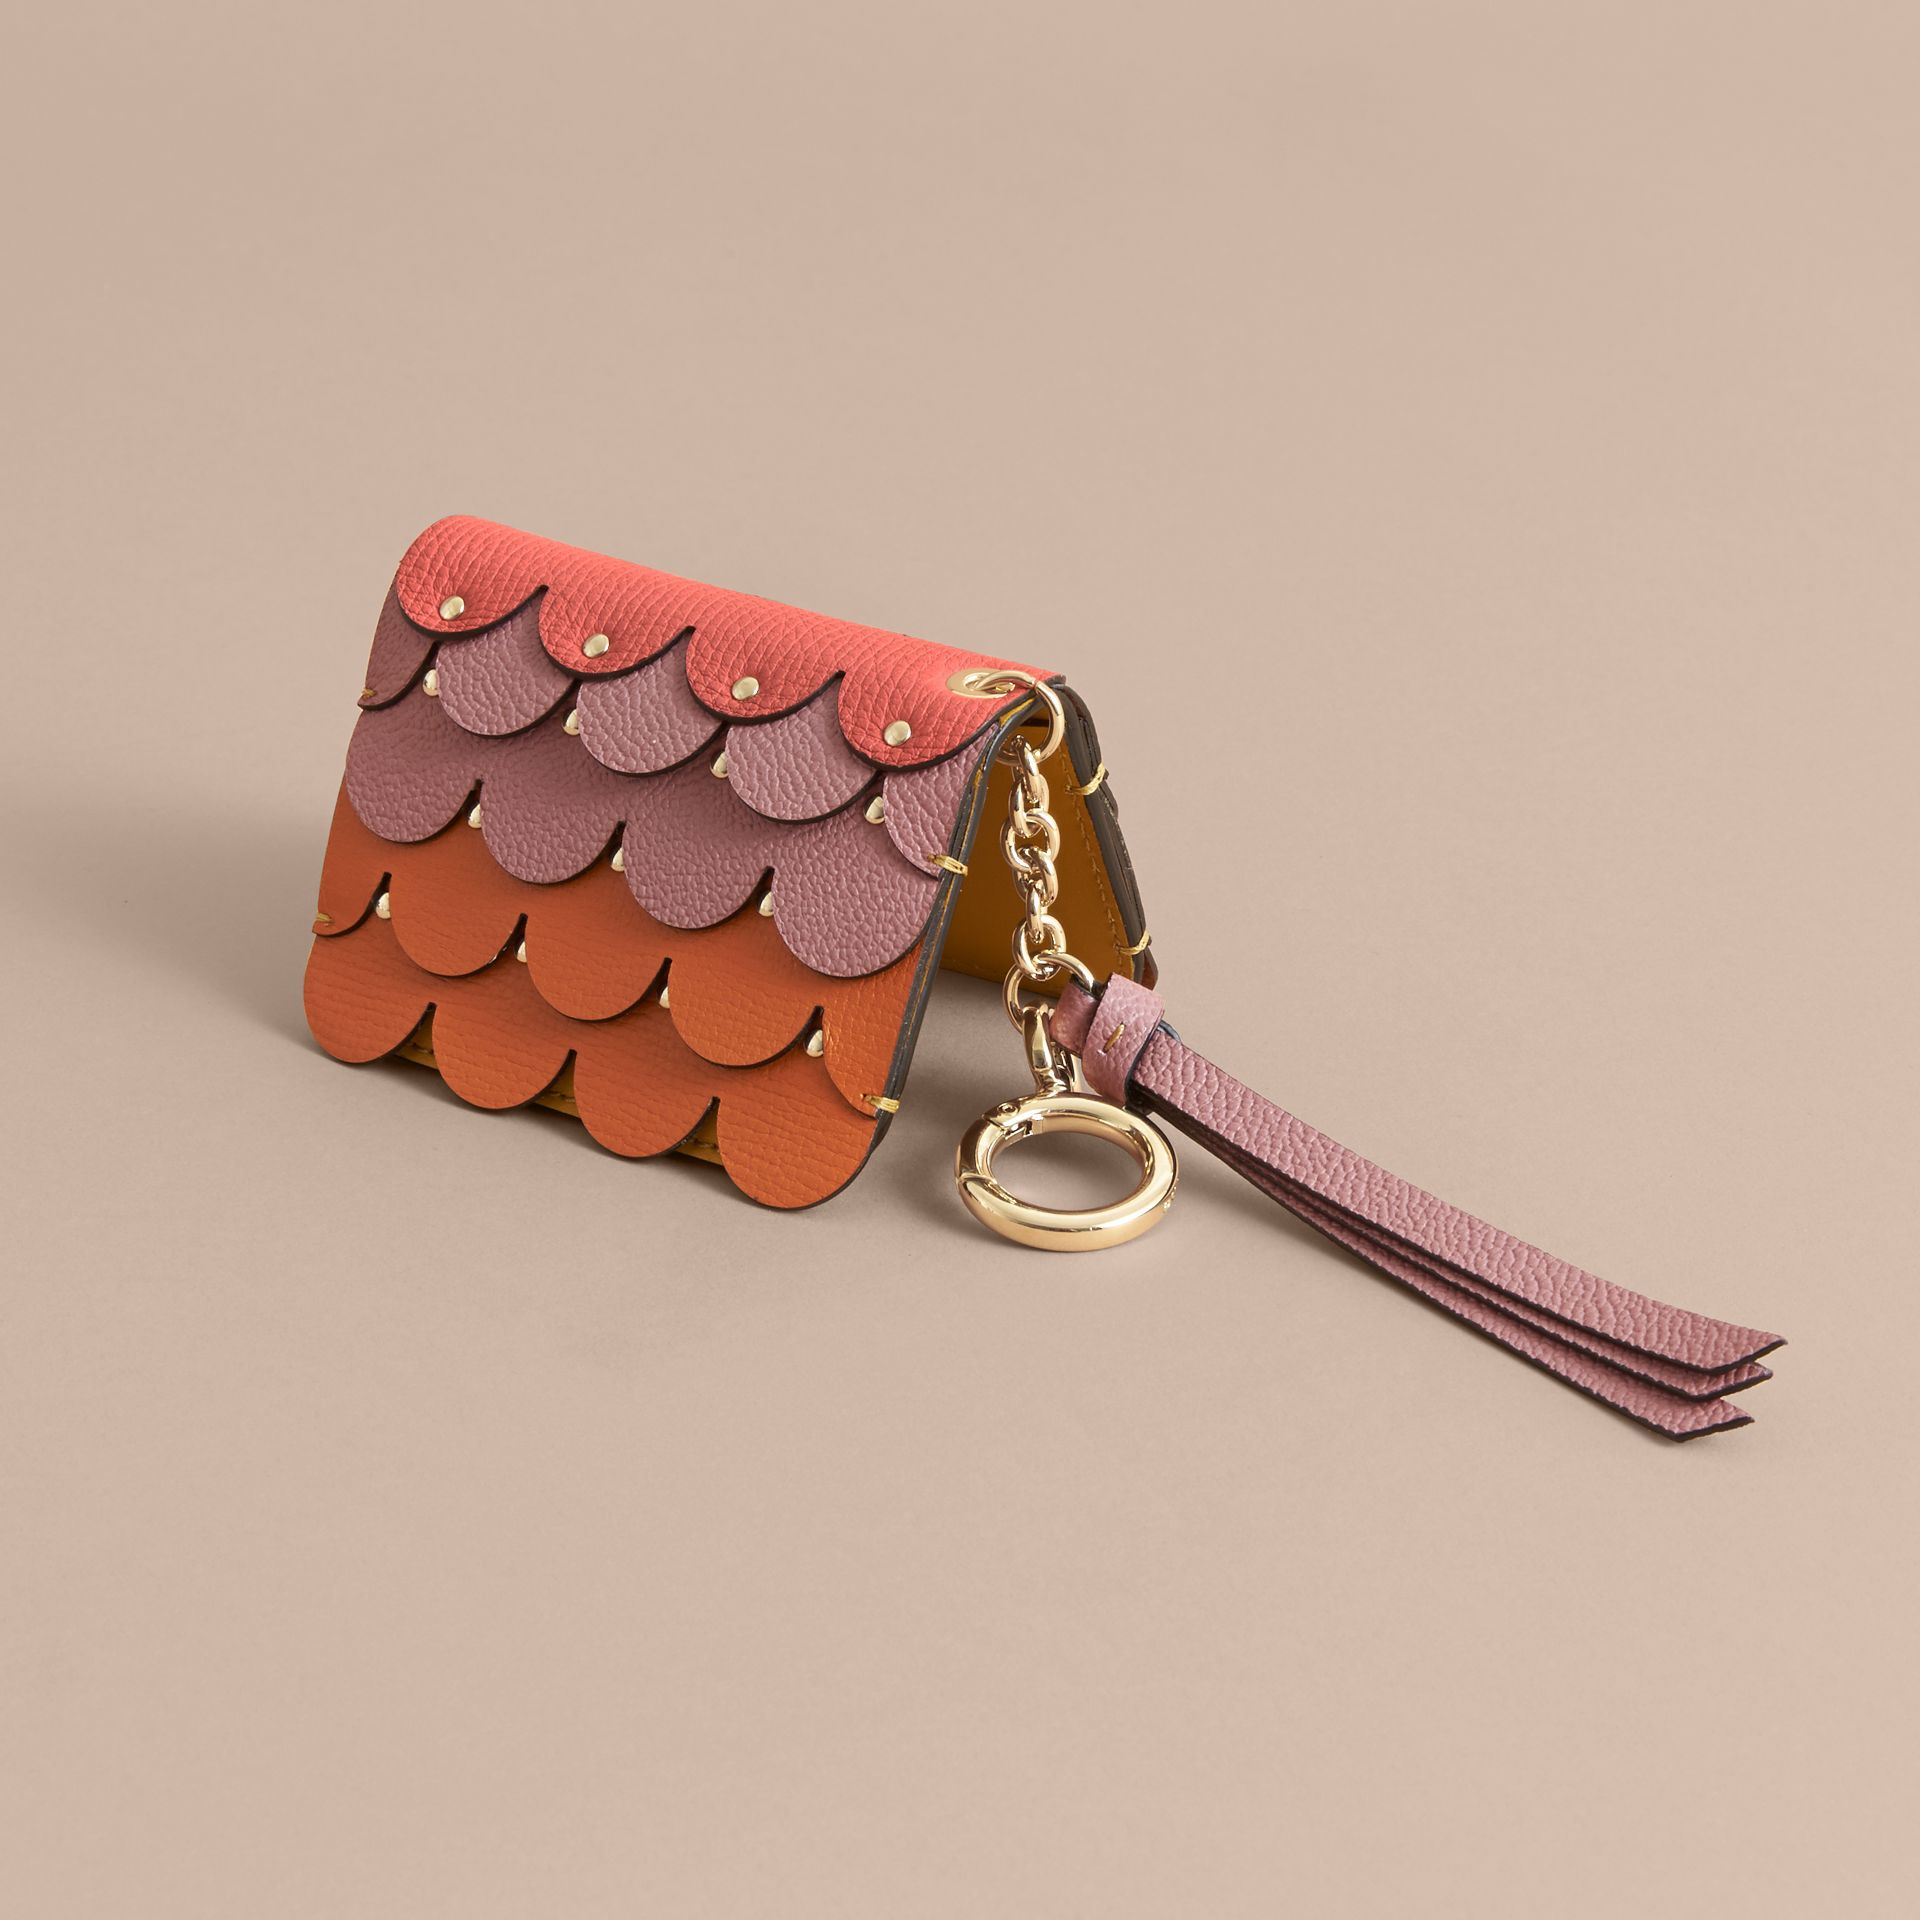 Scalloped Leather Card Case in Bright Straw - Women | Burberry Australia - gallery image 3